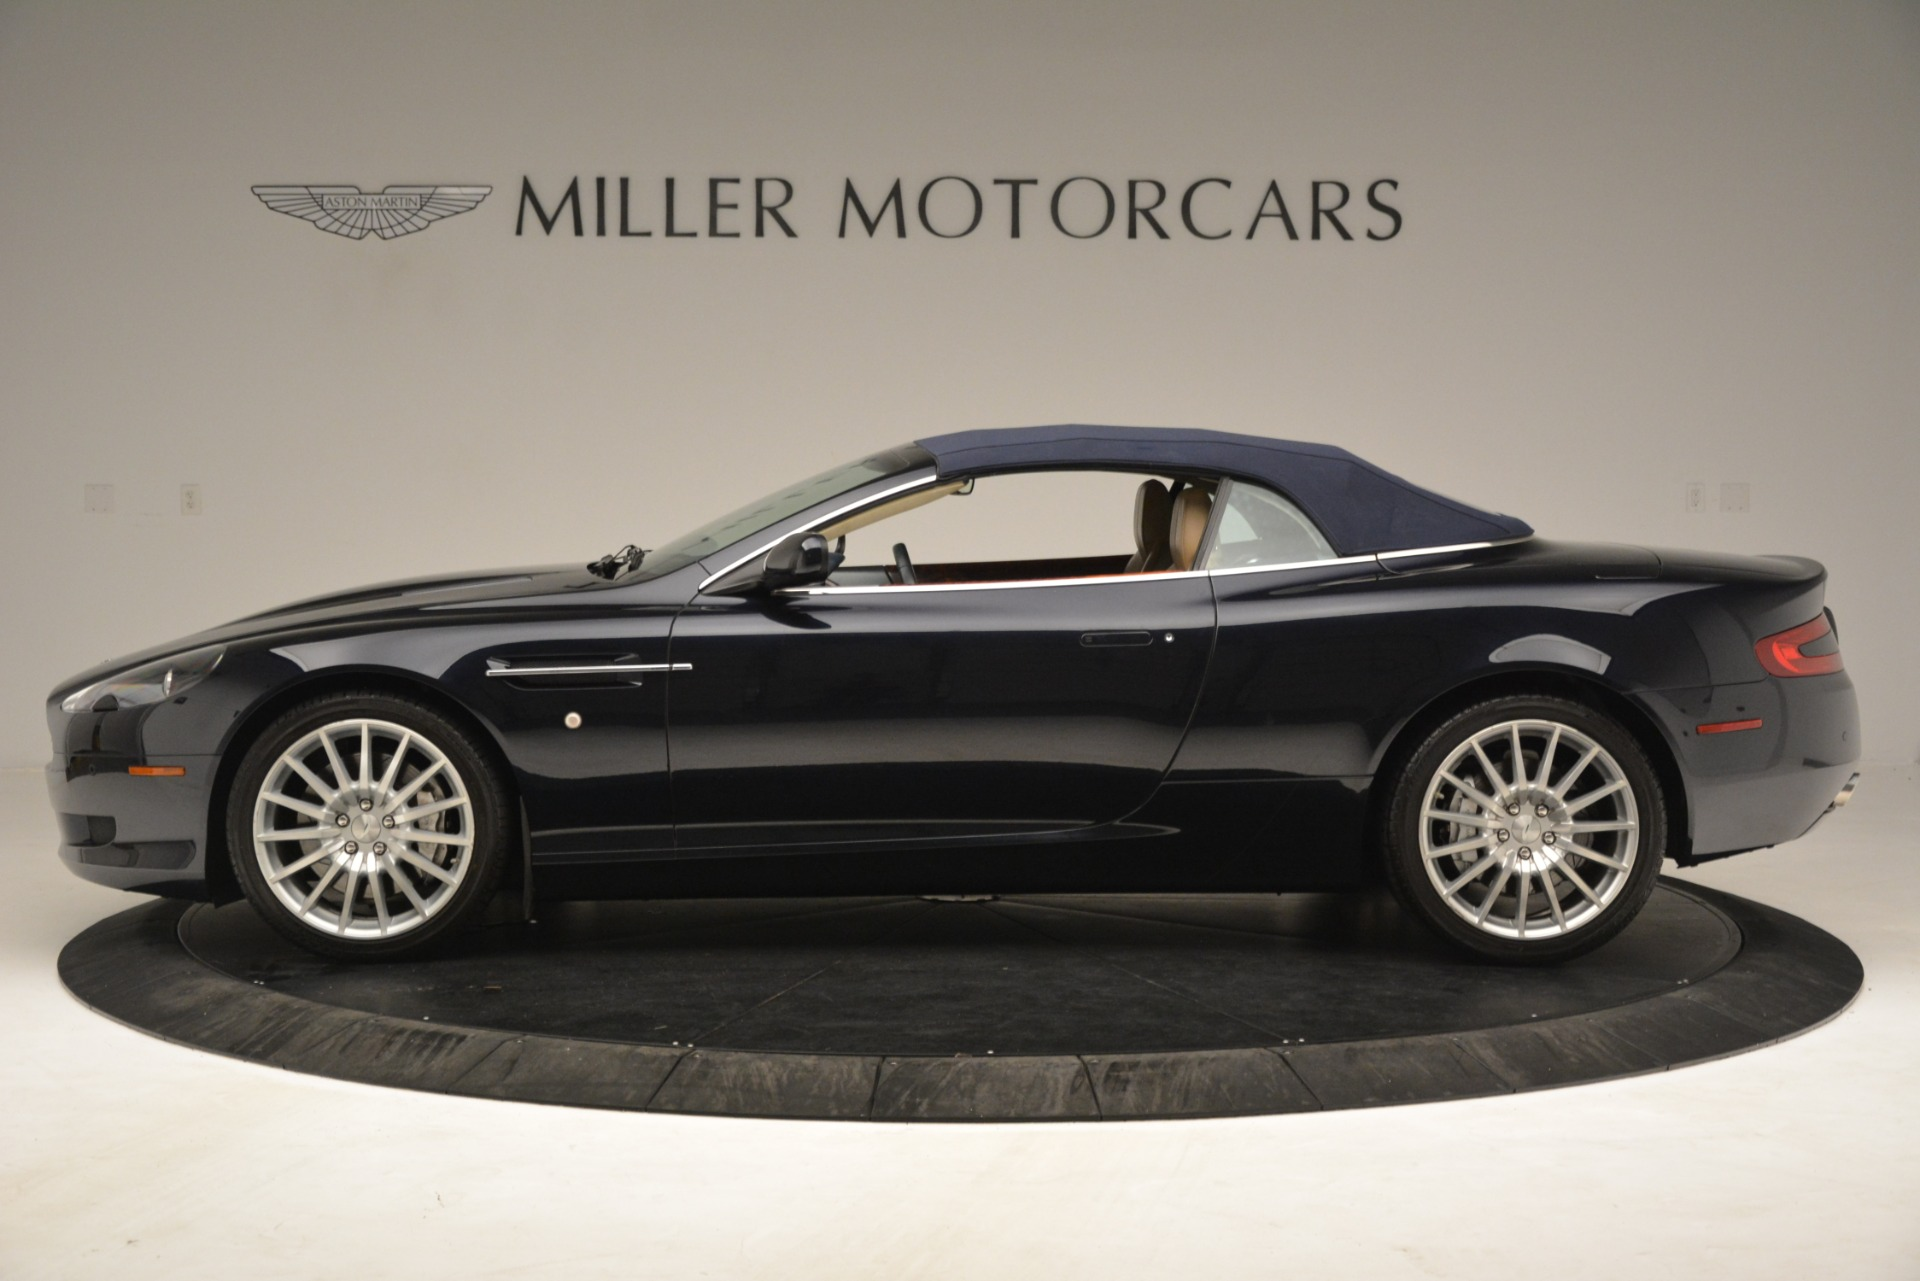 Used 2007 Aston Martin DB9 Convertible For Sale In Westport, CT 3291_p24